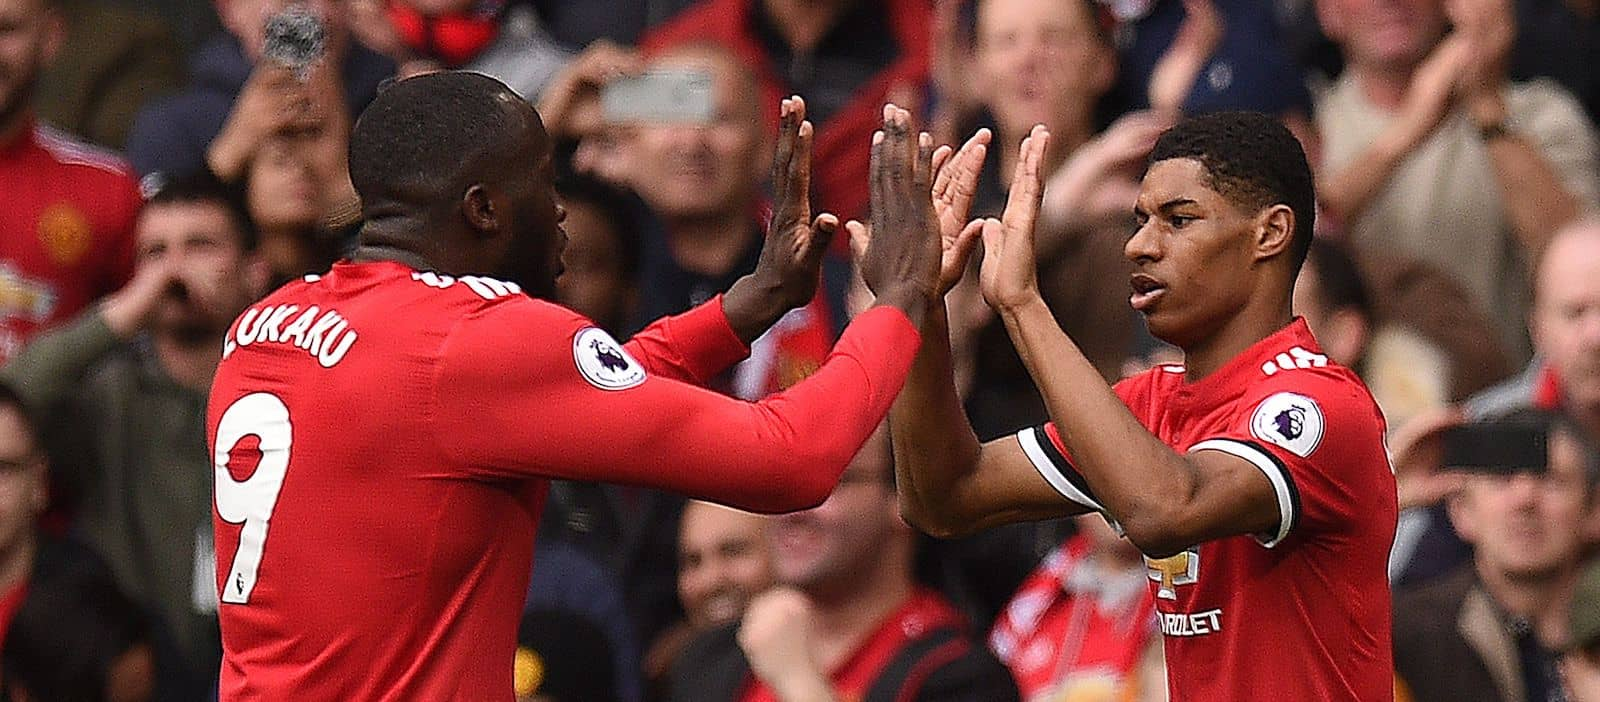 Jamie Carragher praises Manchester United's Romelu Lukaku for big game performances